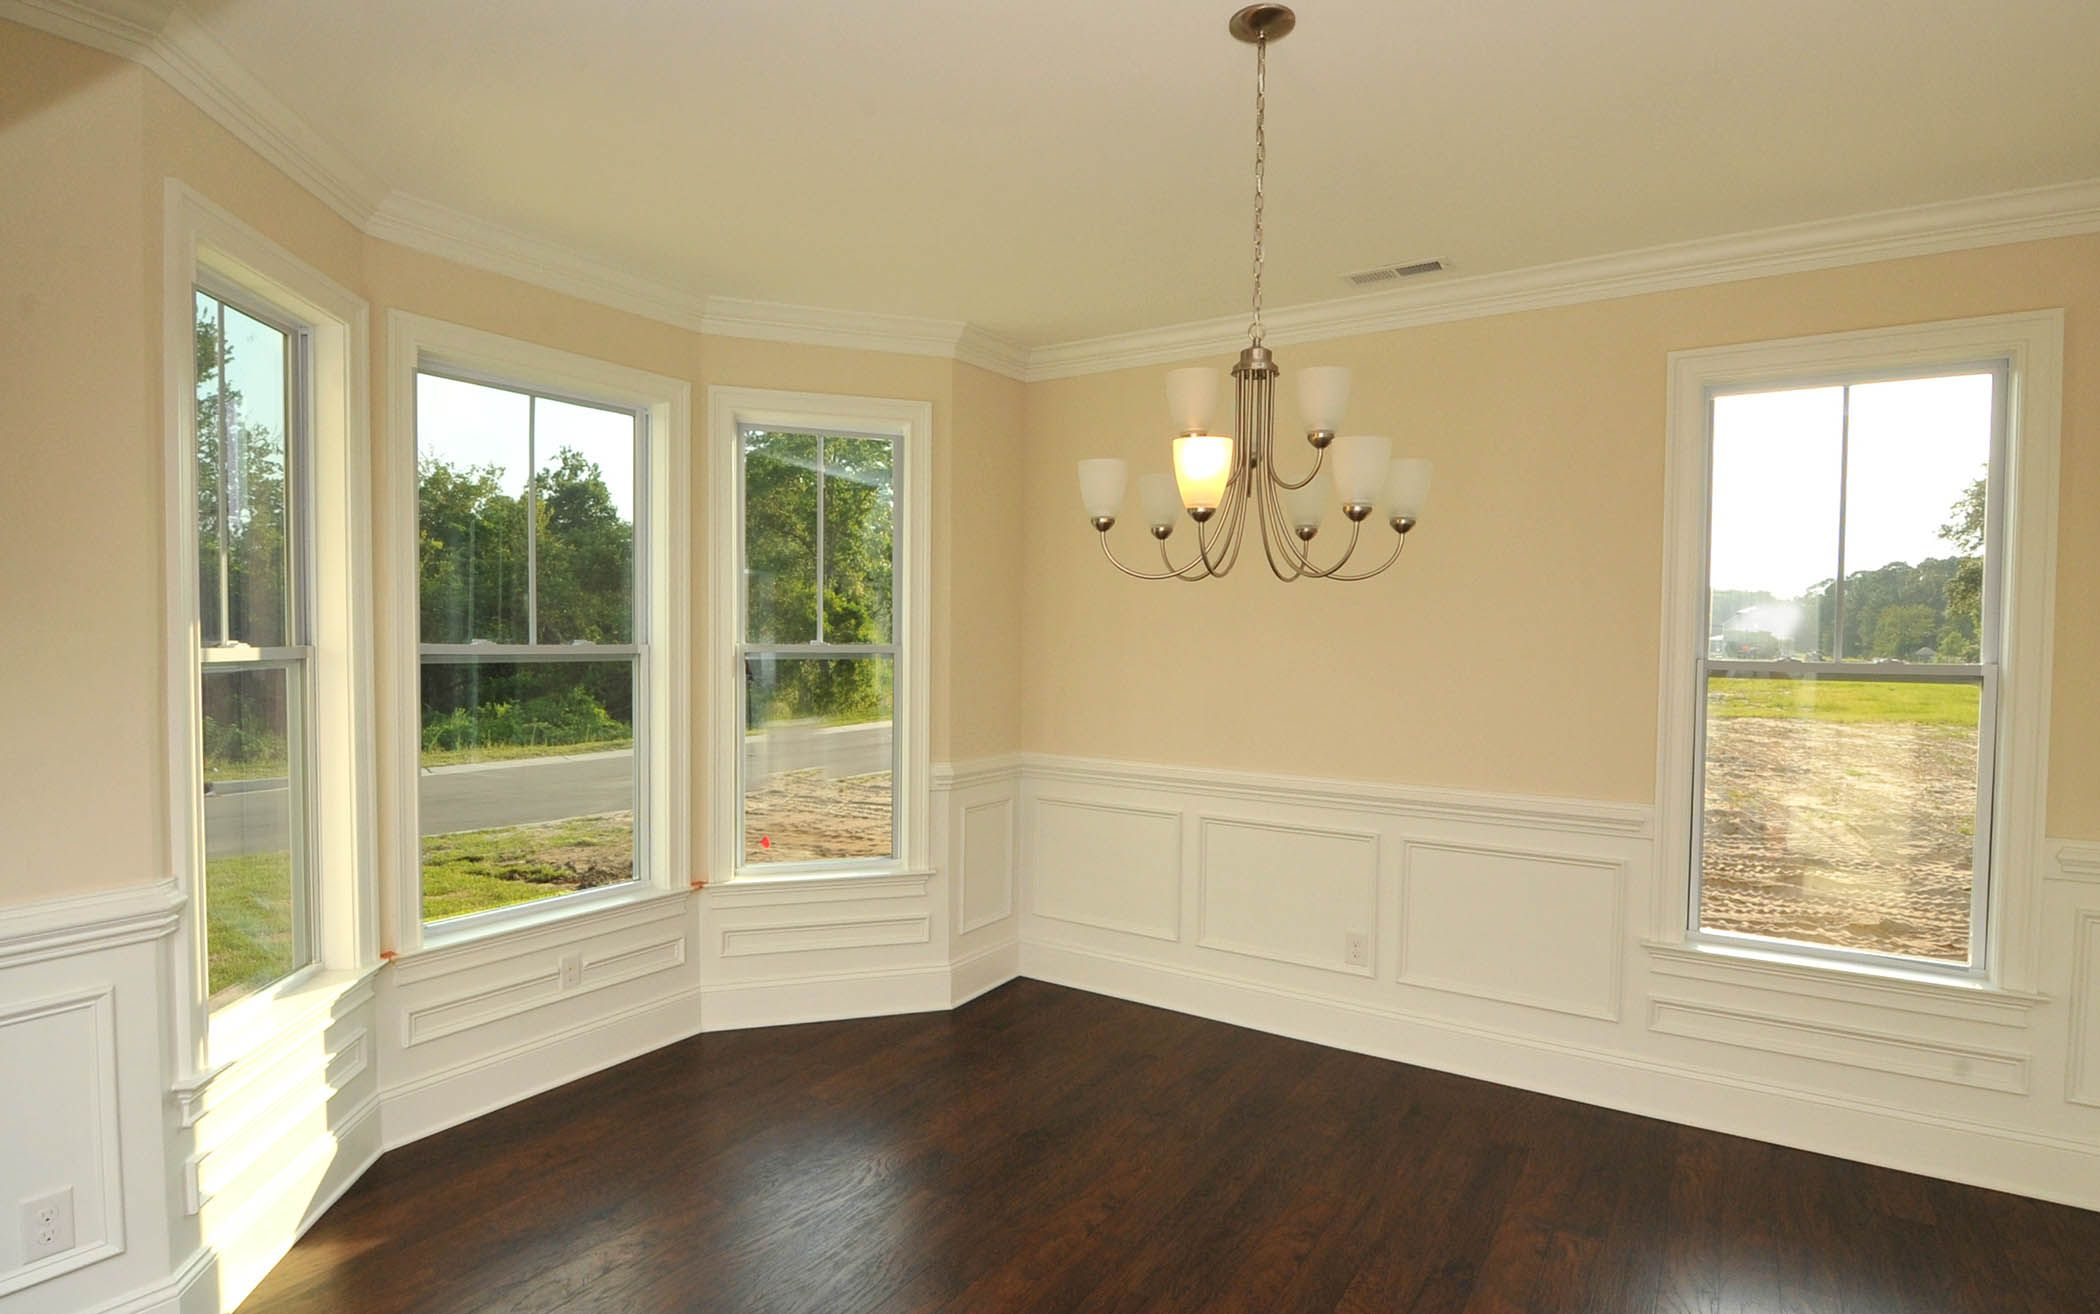 Formal Dining Area With Bay Window And Wainscoting New Homes Bay Window Wainscoting